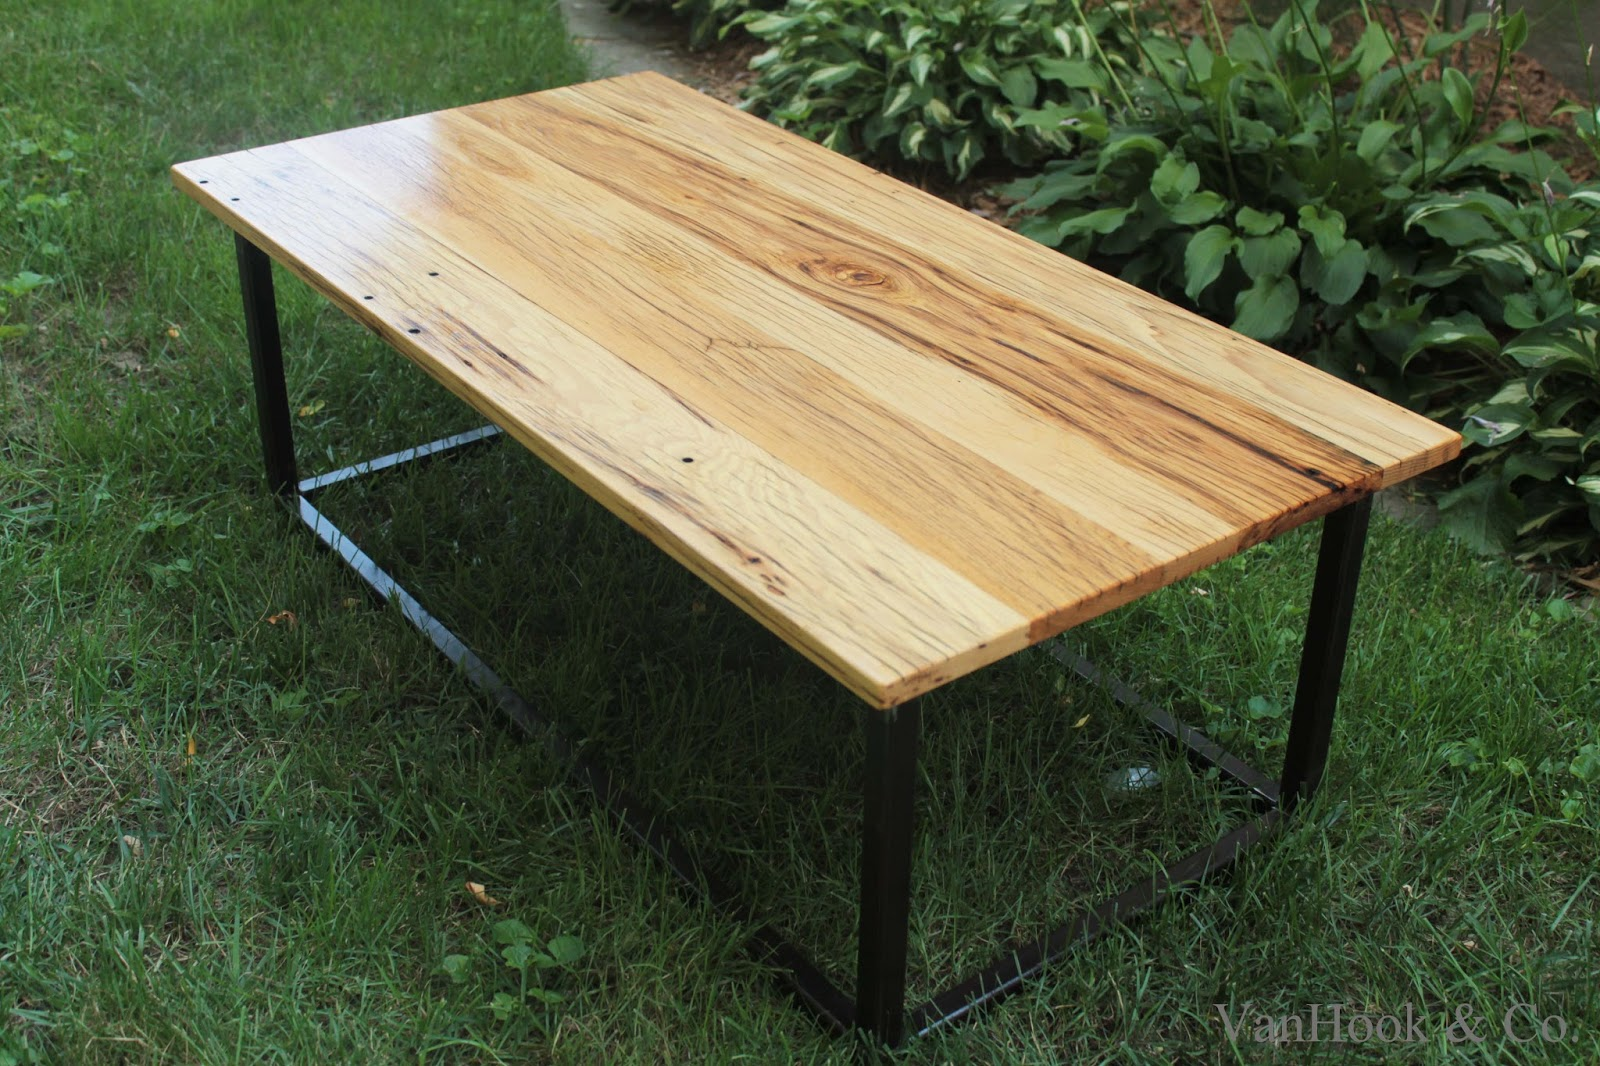 Vanhook co hand built white oak and steel frame coffee